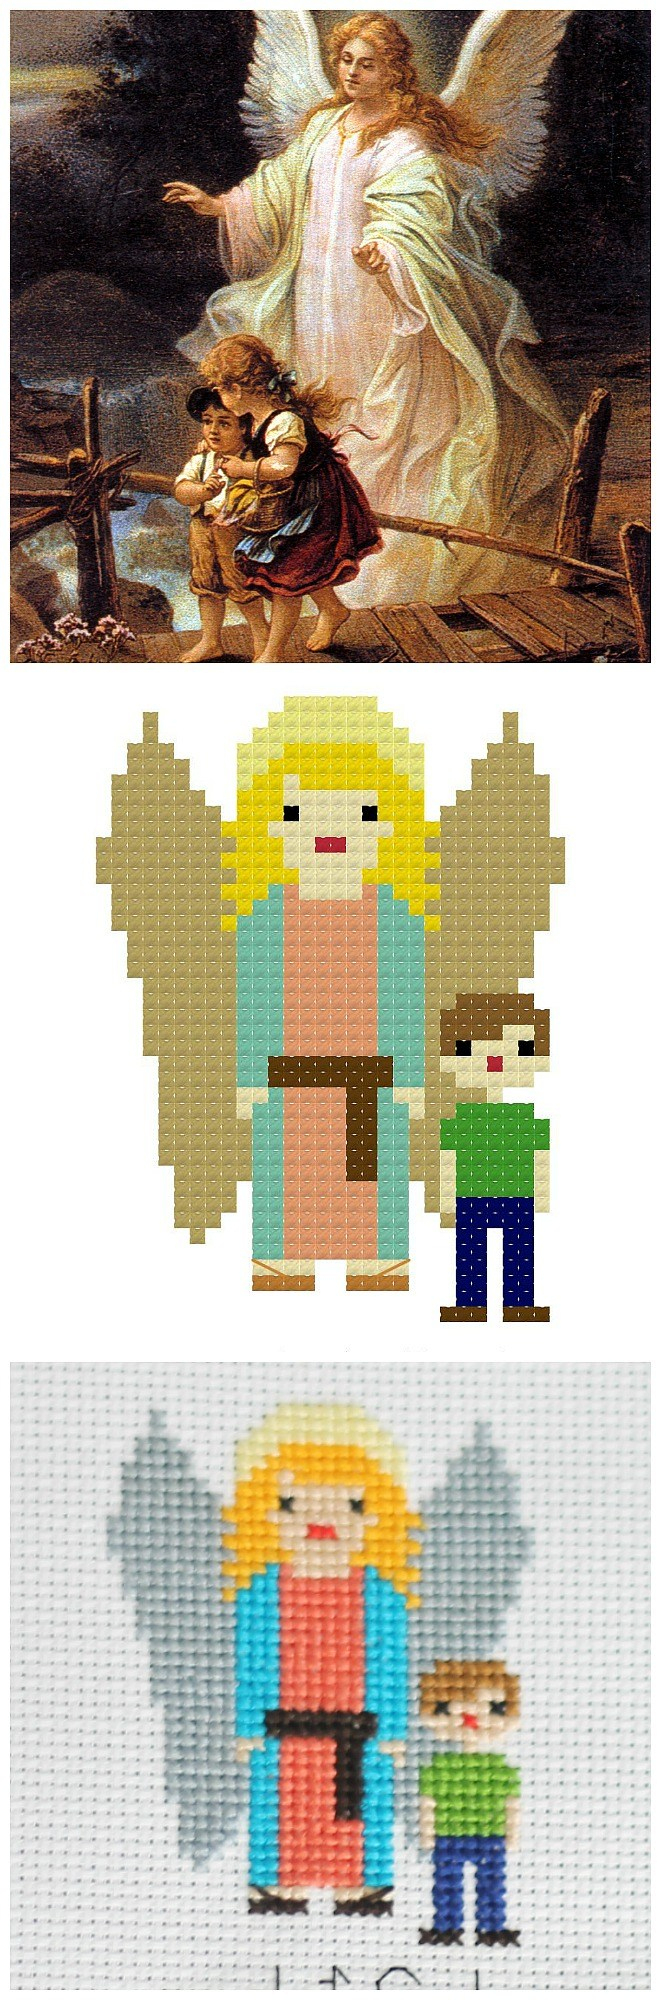 Printable Small Free Patterns Angels Cross Stitch - Free Printable Cross Stitch Patterns Angels